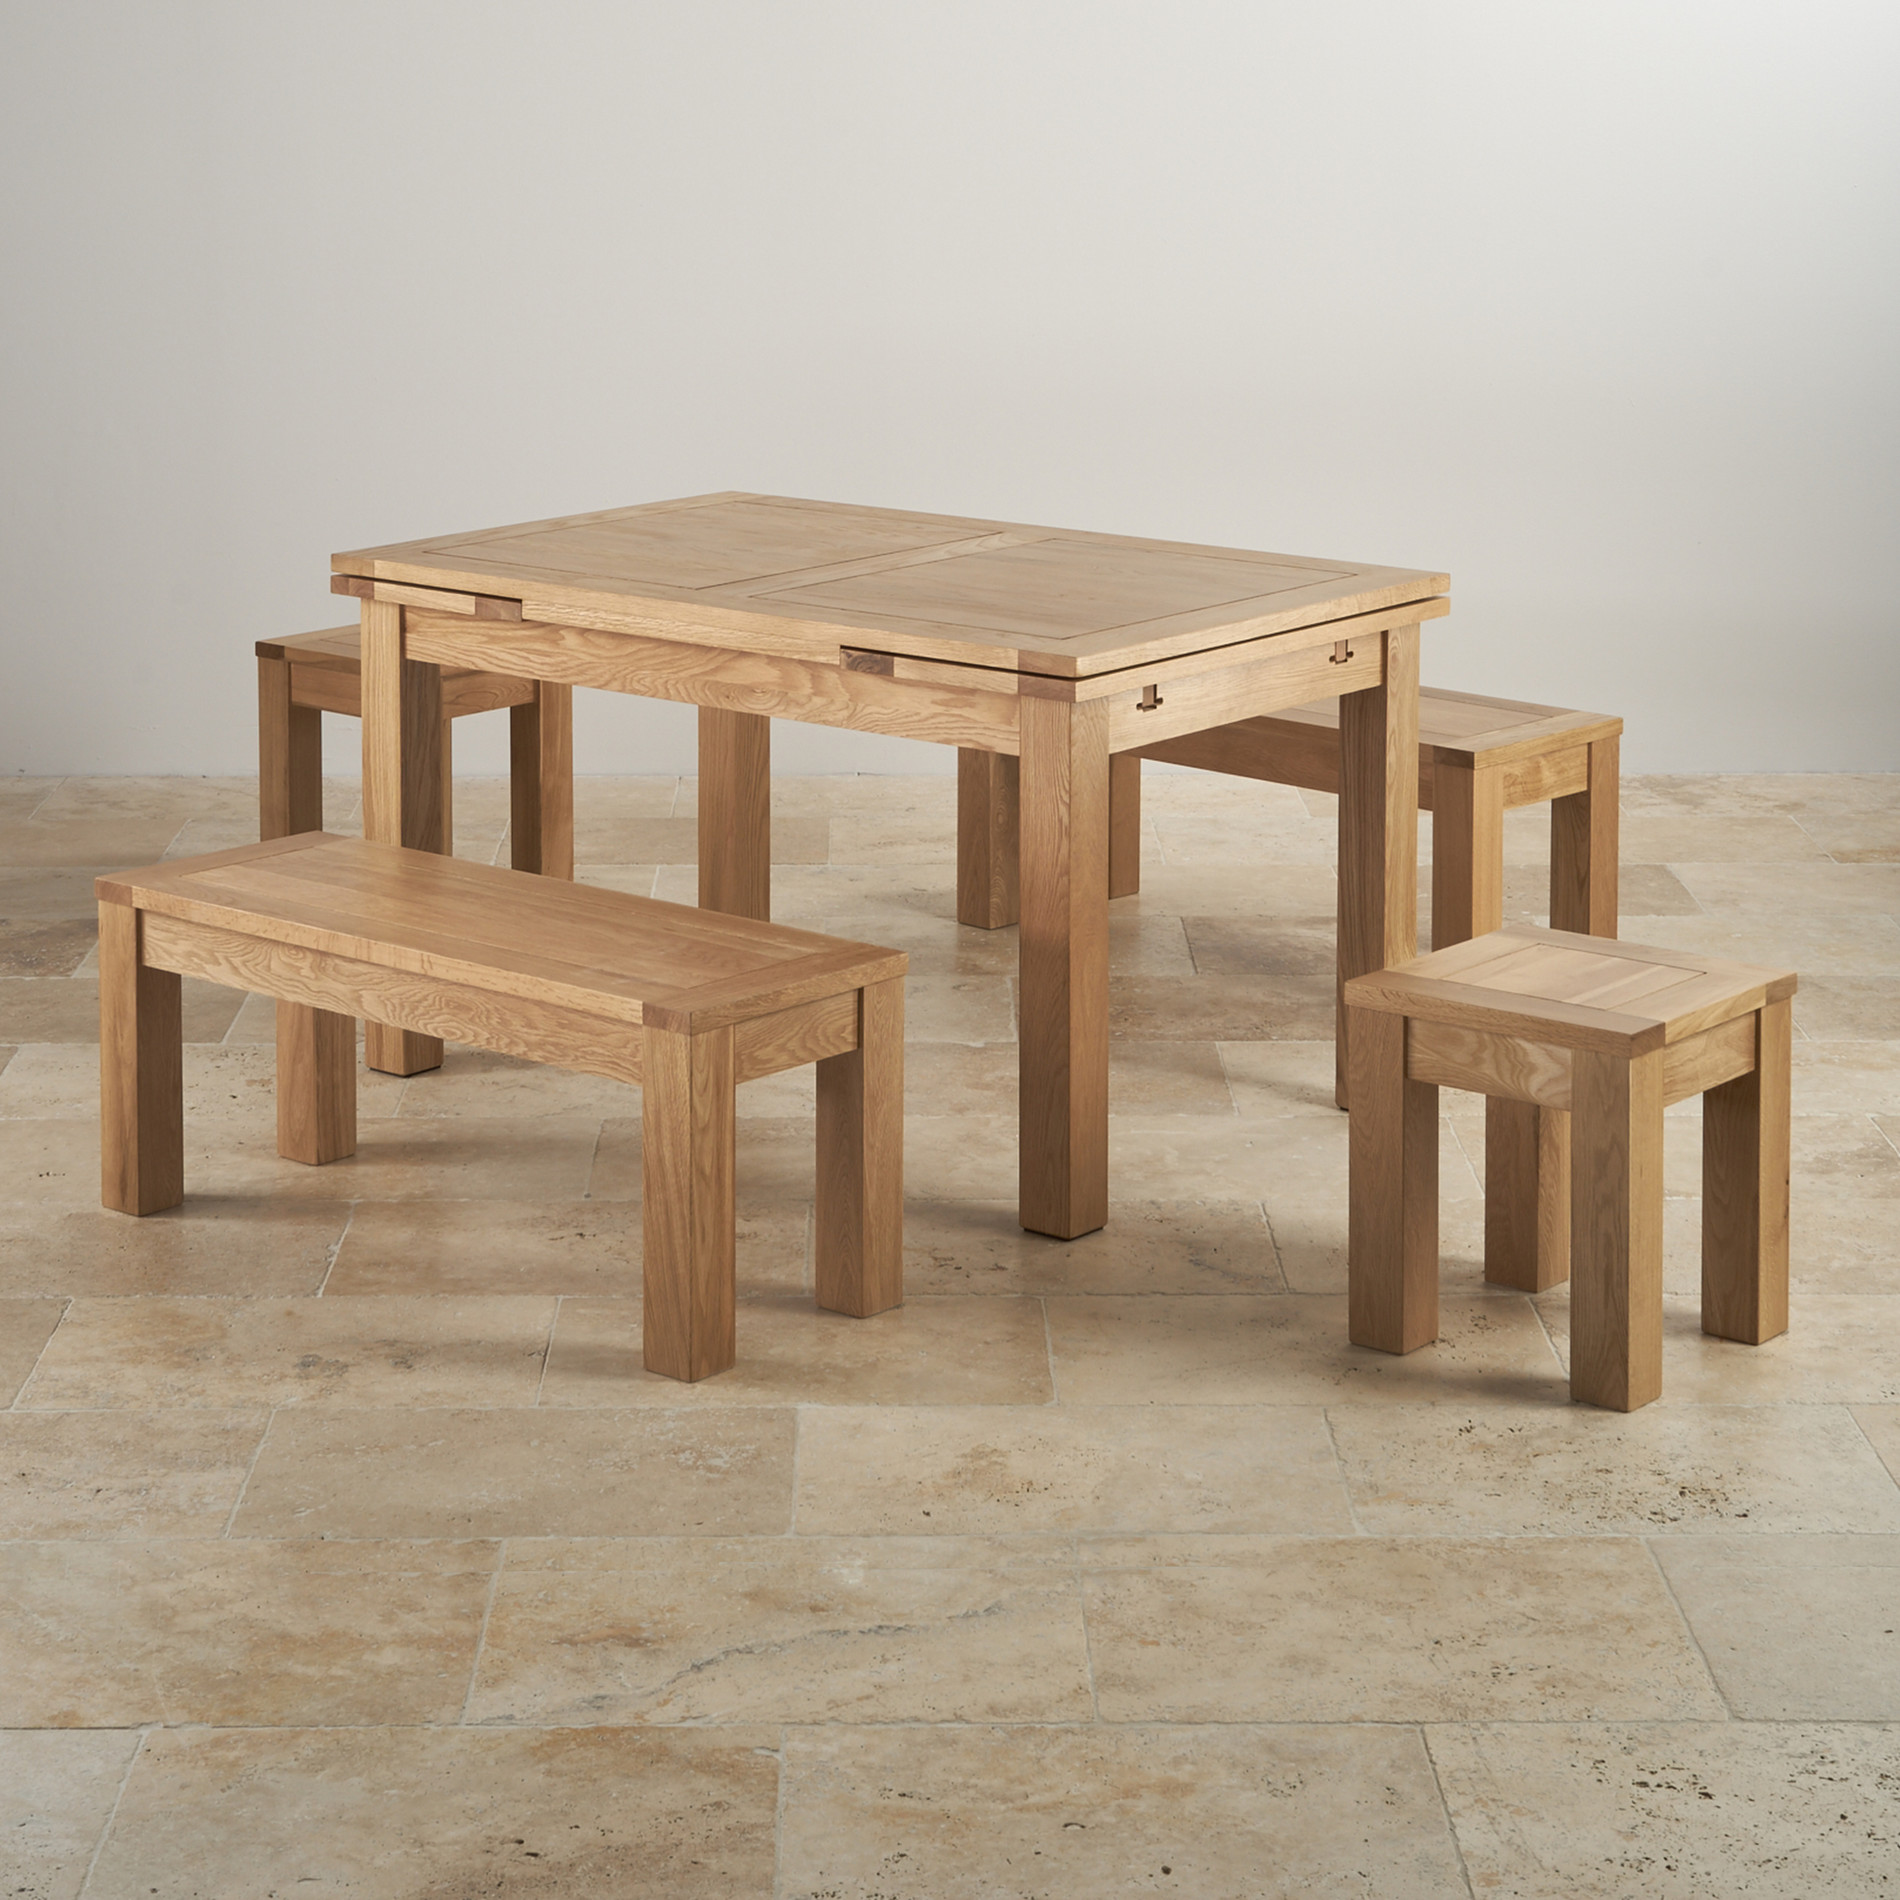 Dorset Oak 4ft 7 Quot Dining Table With 2 Benches Amp 2 Stools